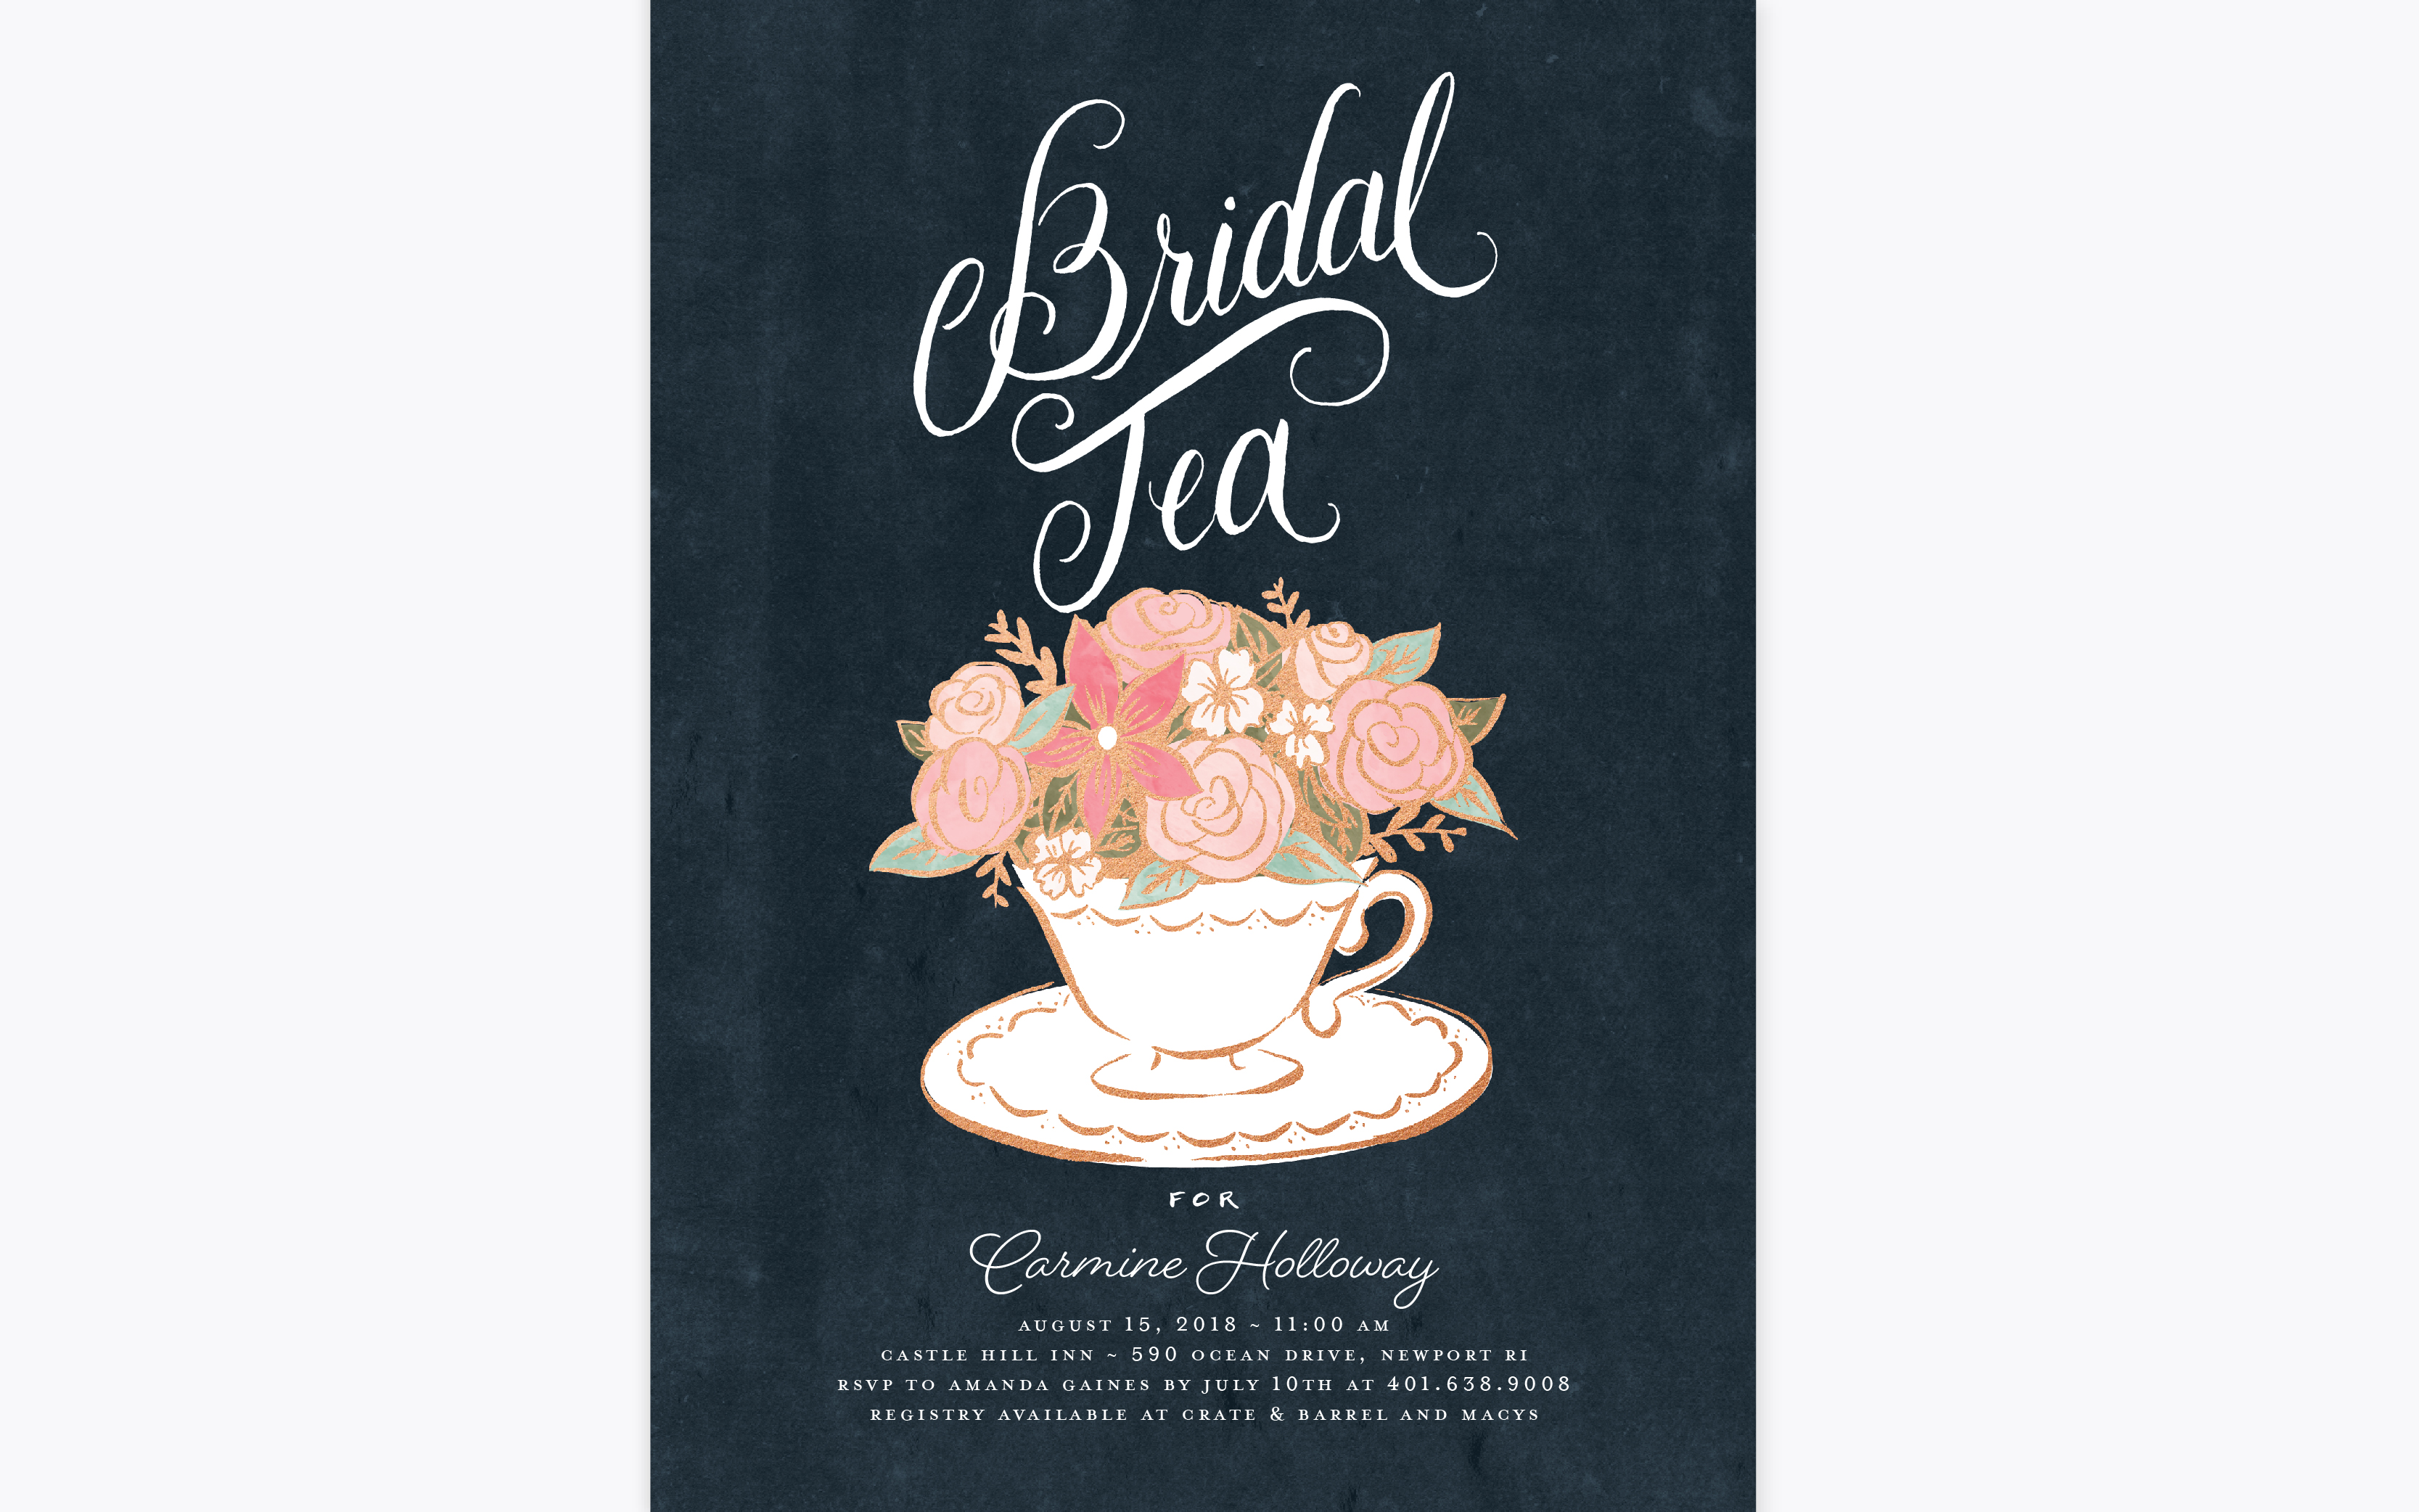 pottsdesign work bridal shower invitation